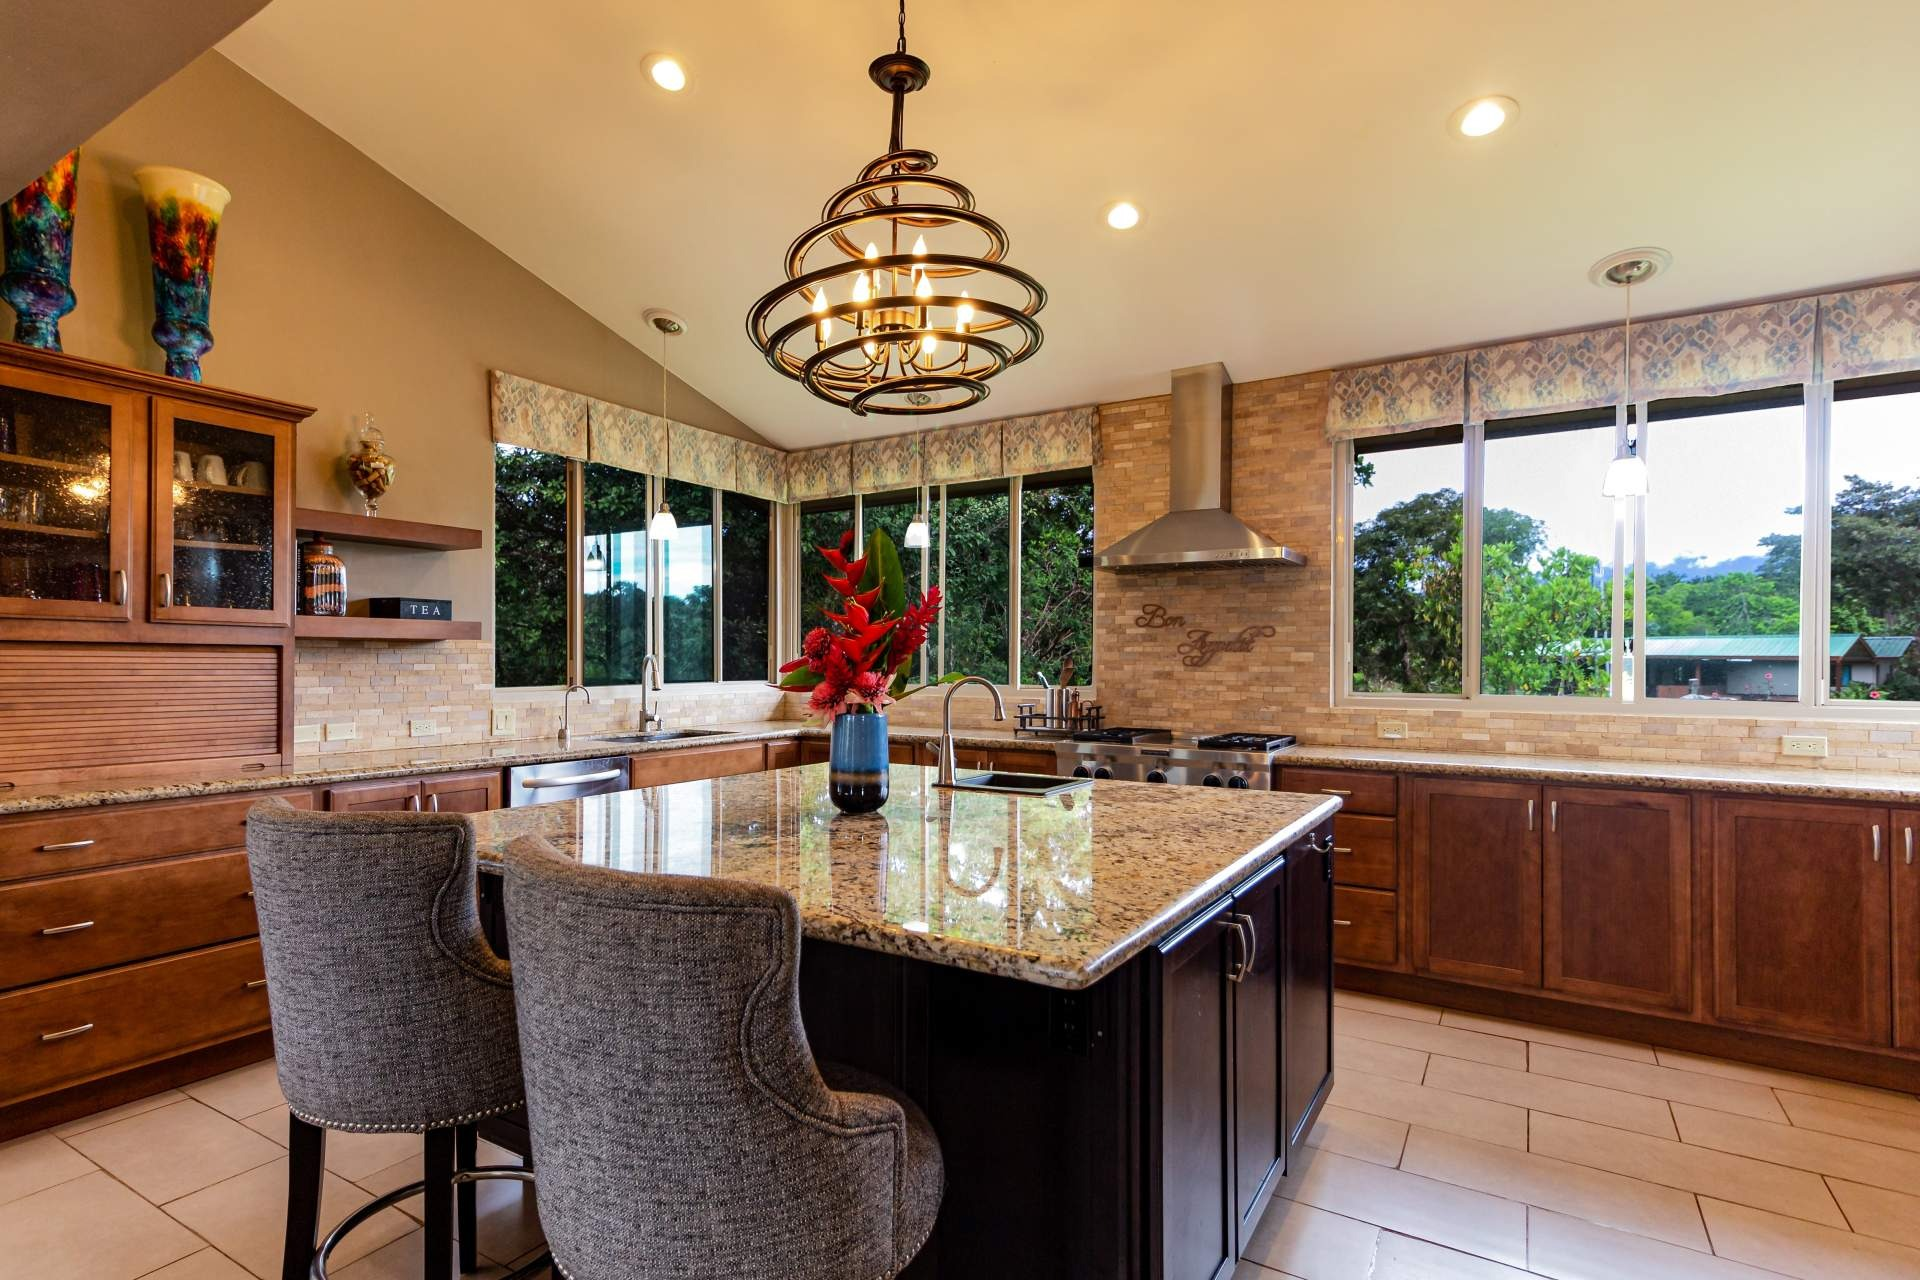 This is an image of a classic kitchen design.